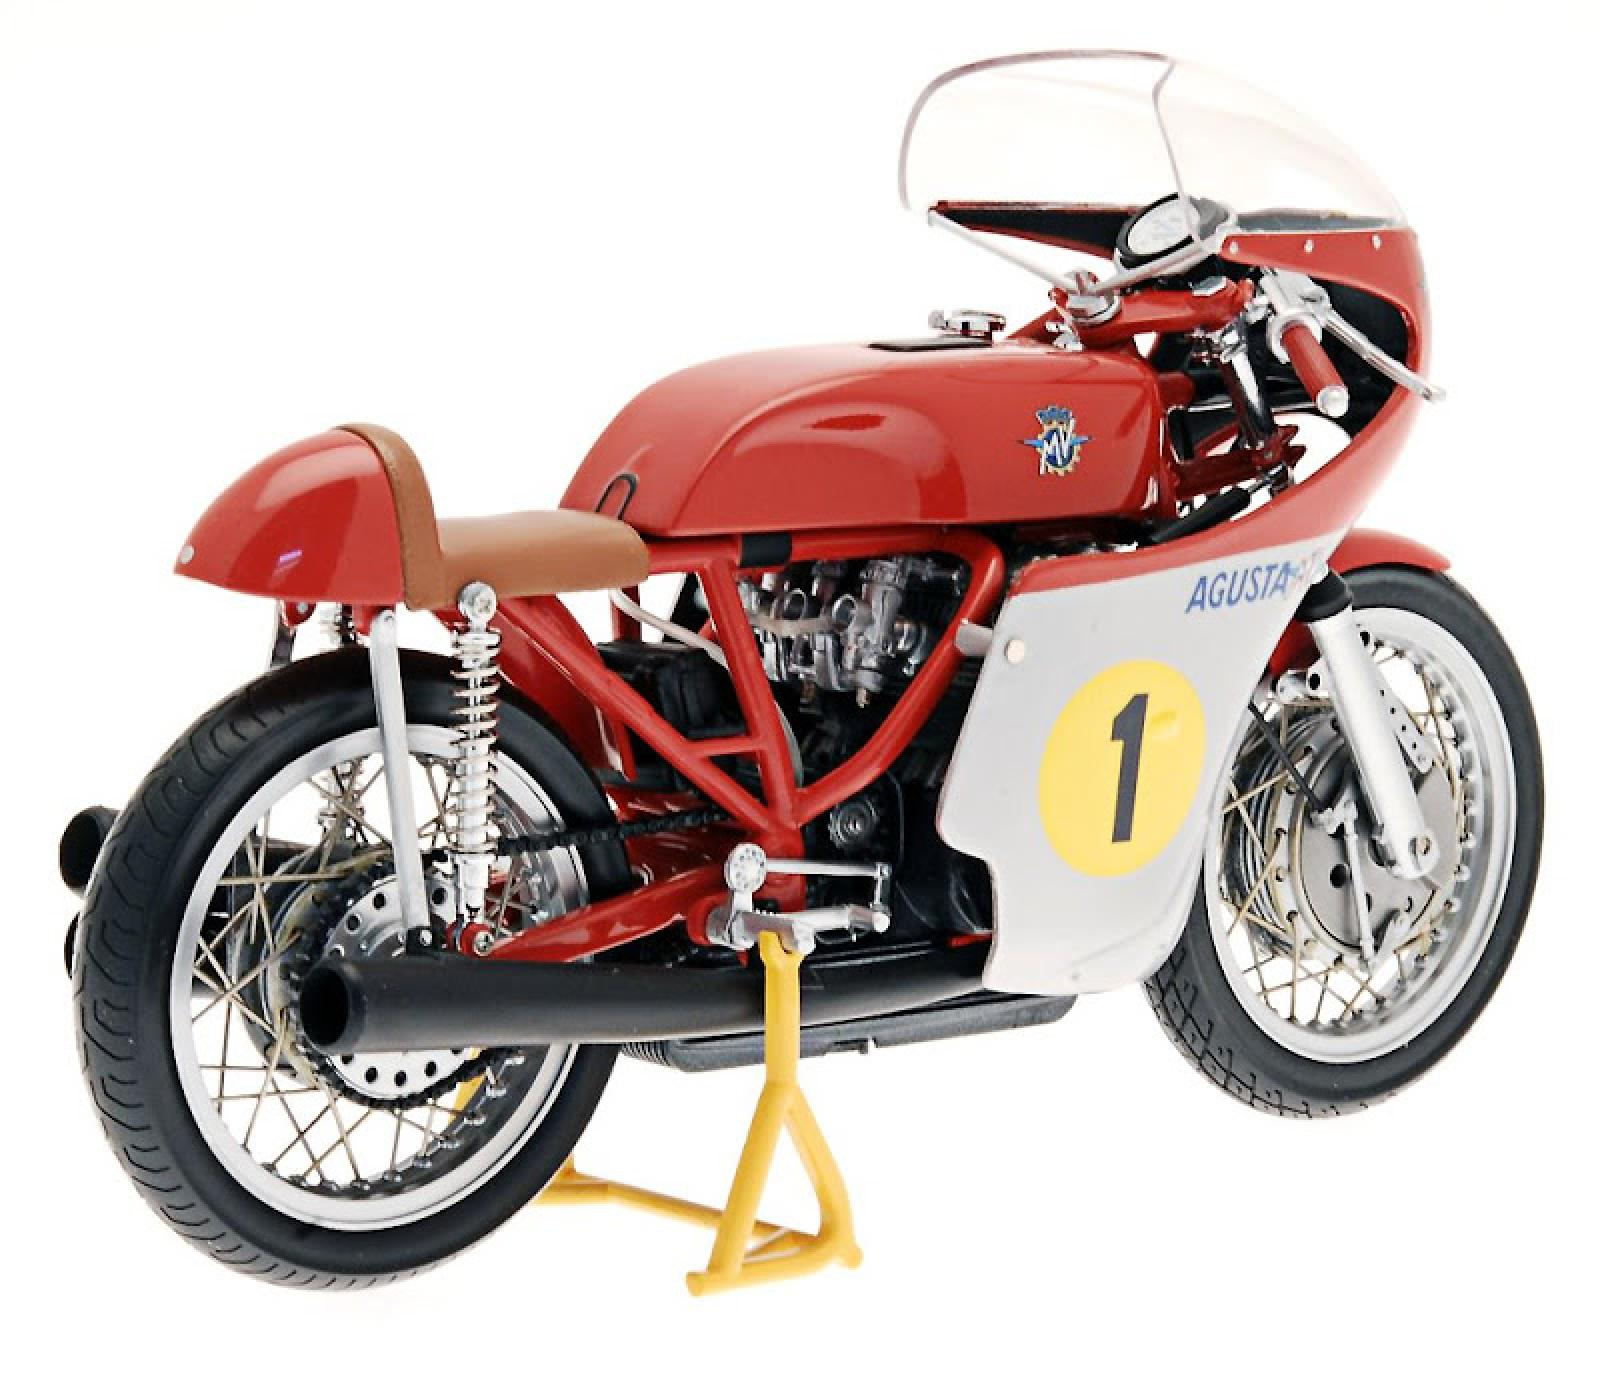 1981 mv agusta 1100 grand prix pics specs and information. Black Bedroom Furniture Sets. Home Design Ideas